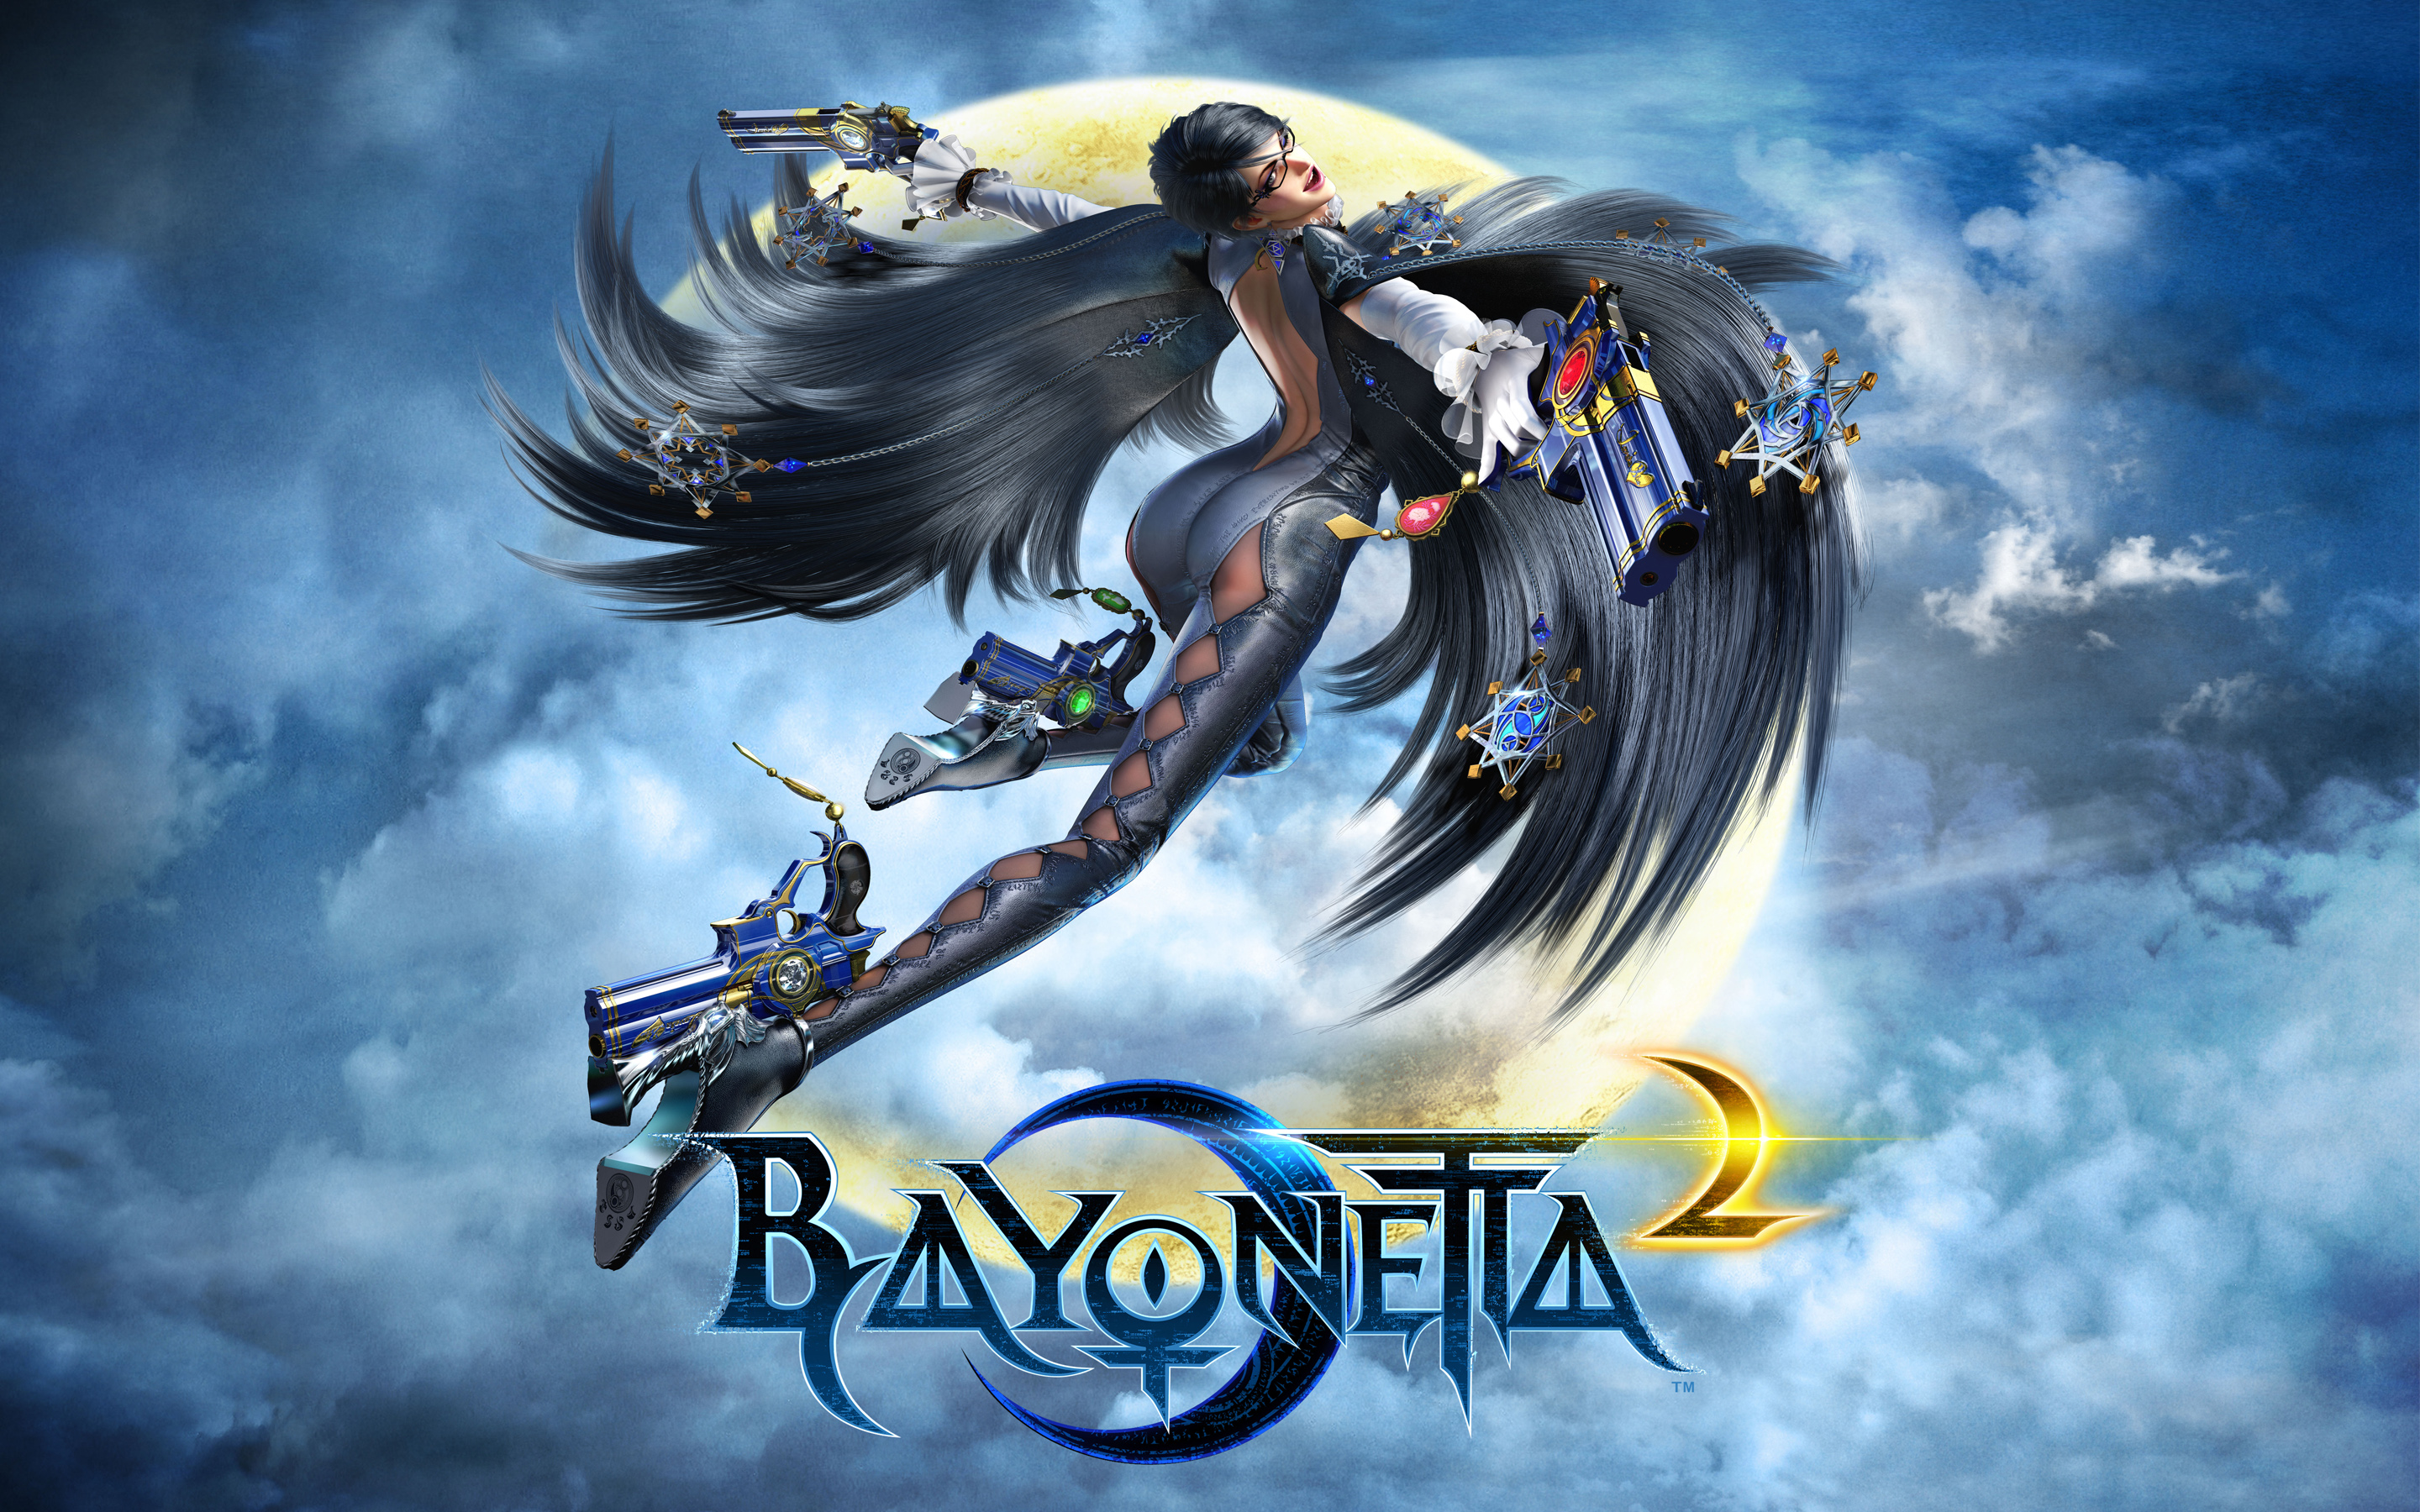 Bayonetta 2 video game